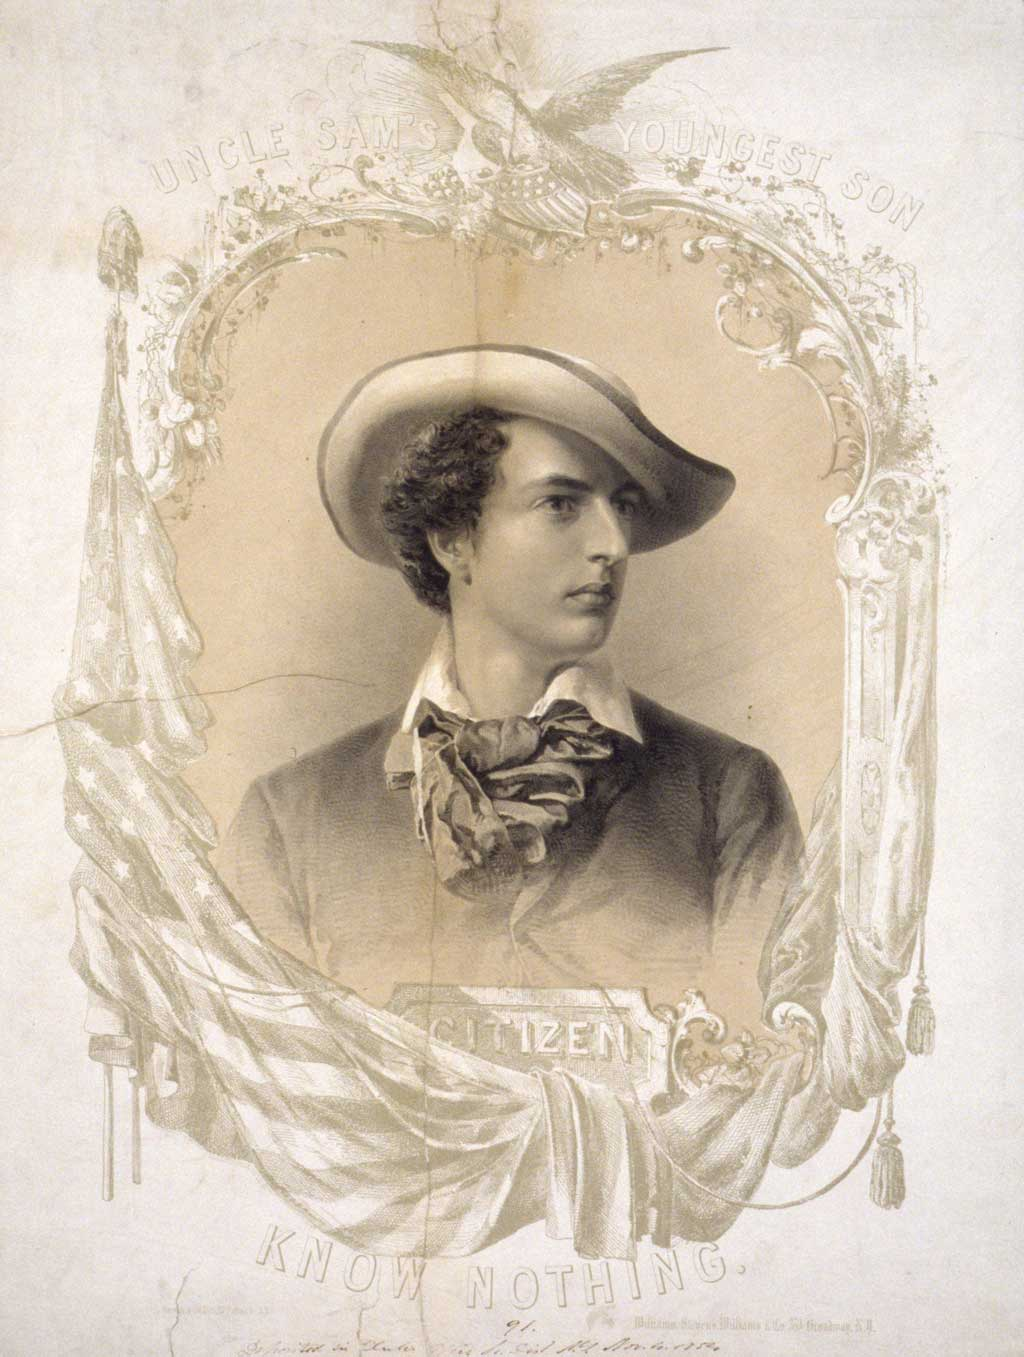 A bust portrait of a young man representing the nativist ideal of the Know Nothing party. He wears a bold tie and a fedora-type hat tilted at a rakish angle. The portrait is framed by intricate carving and scrollwork surmounted by an eagle with a shield, and is draped by an American flag. Behind the eagle is a gleaming star. The flag hangs from a staff at left which has a liberty cap on its end